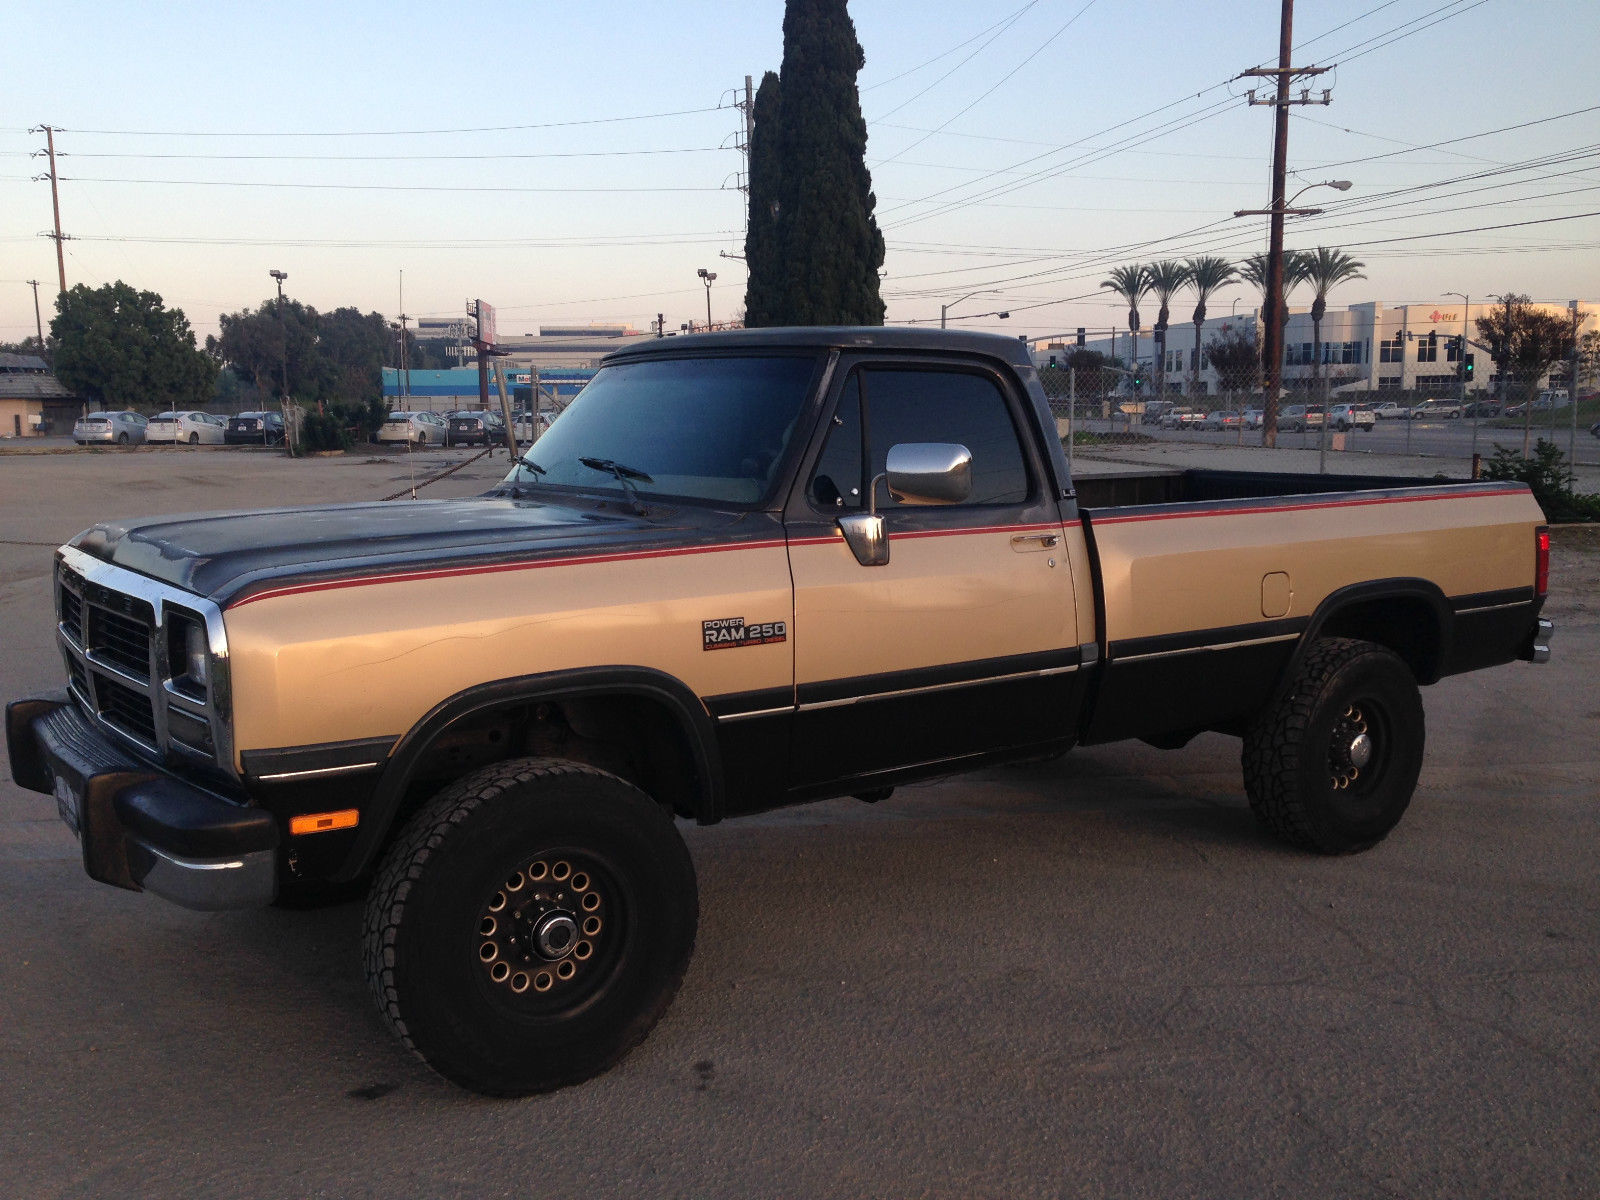 1991 Dodge Ram W250 Cummins Turbo Diesel 4x4 Auto